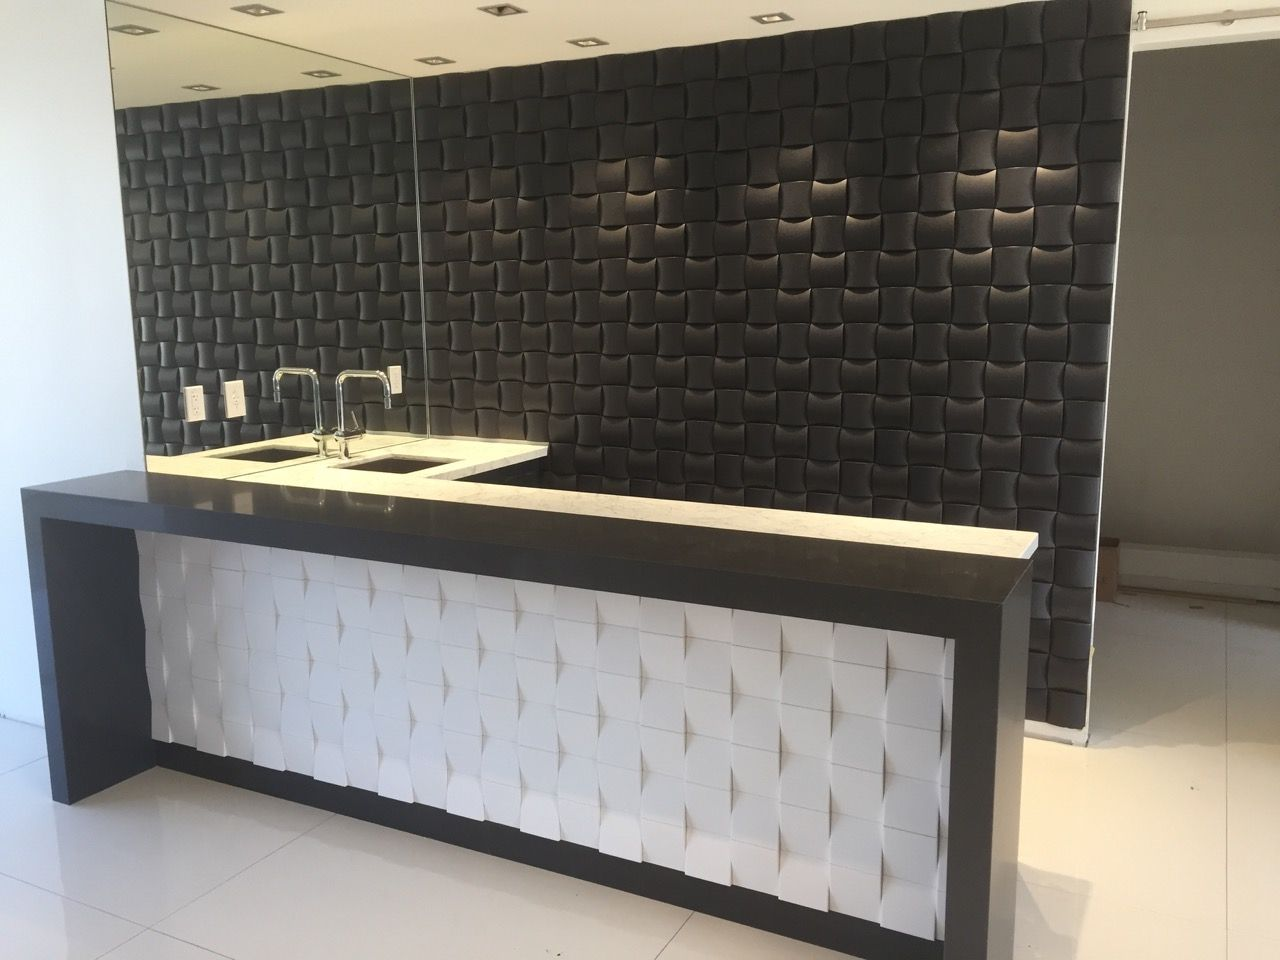 Nice 1200 X 600 Ceiling Tiles Thick 12X24 Ceramic Tile Regular 12X24 Tile Floor 1X1 Floor Tile Old 24X24 Ceiling Tiles Purple2X2 White Ceramic Tile New Julian Tile | Project | Langley Showroom | Pinterest | Labs ..